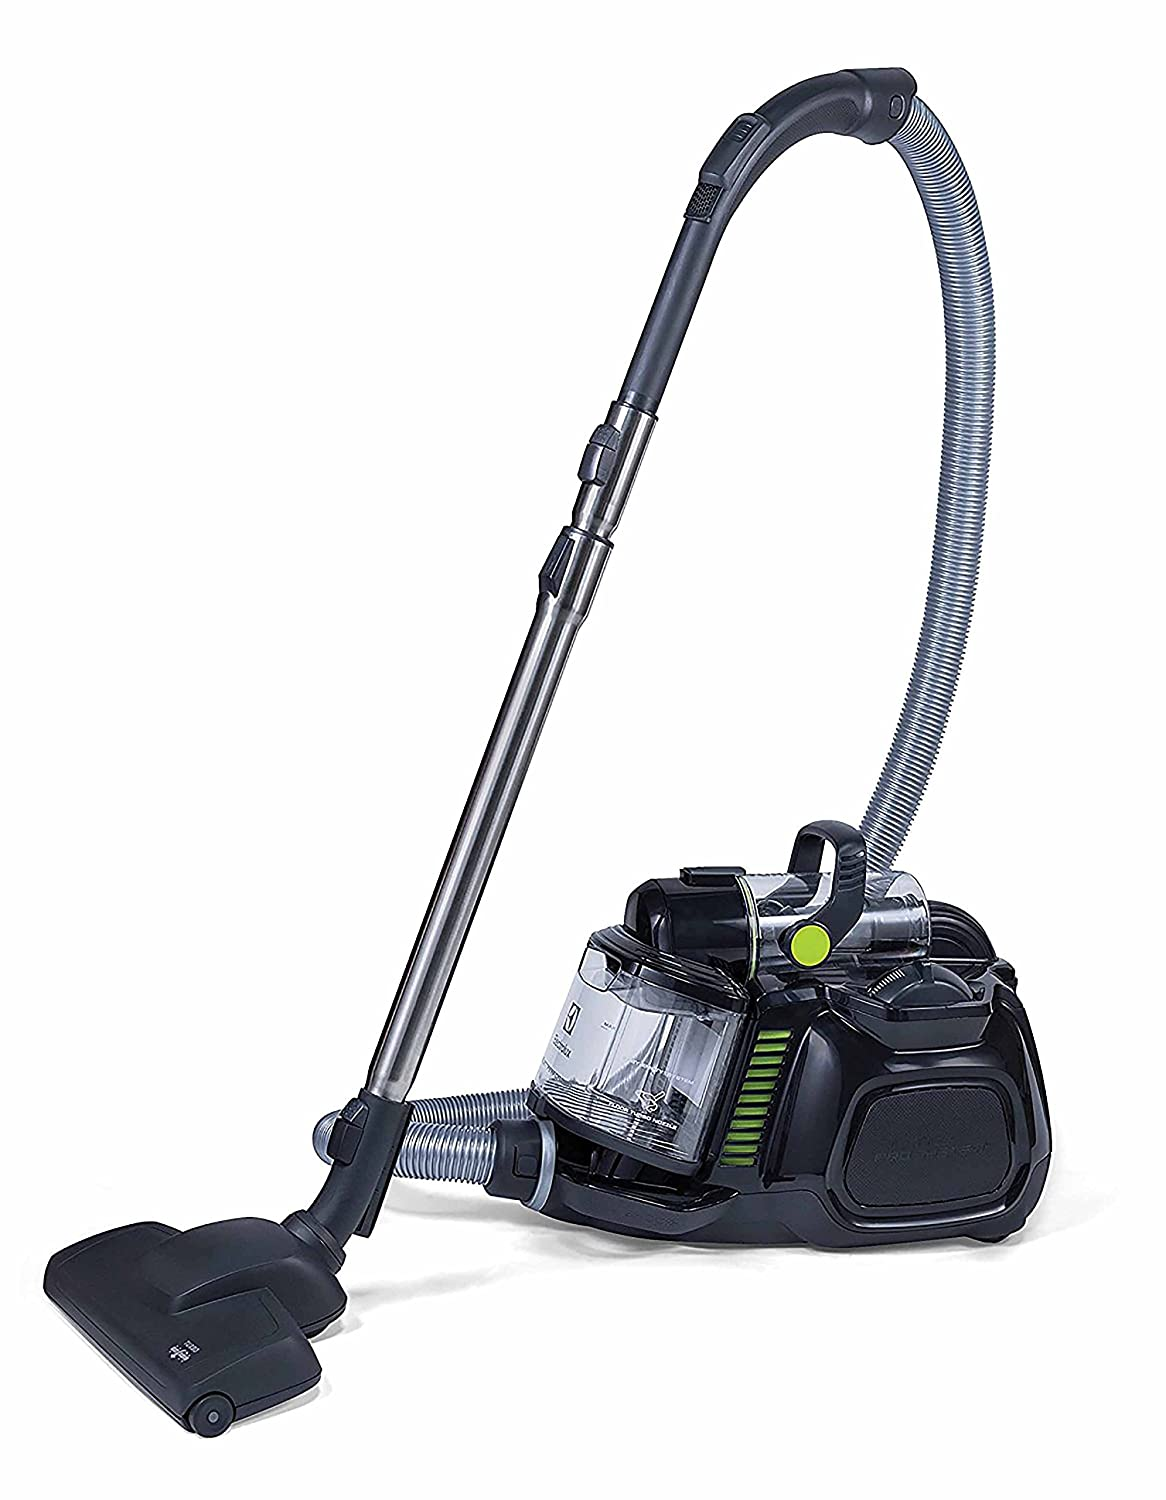 The 15 Best Canister Vacuums Cleaners Reviews Buying Guide